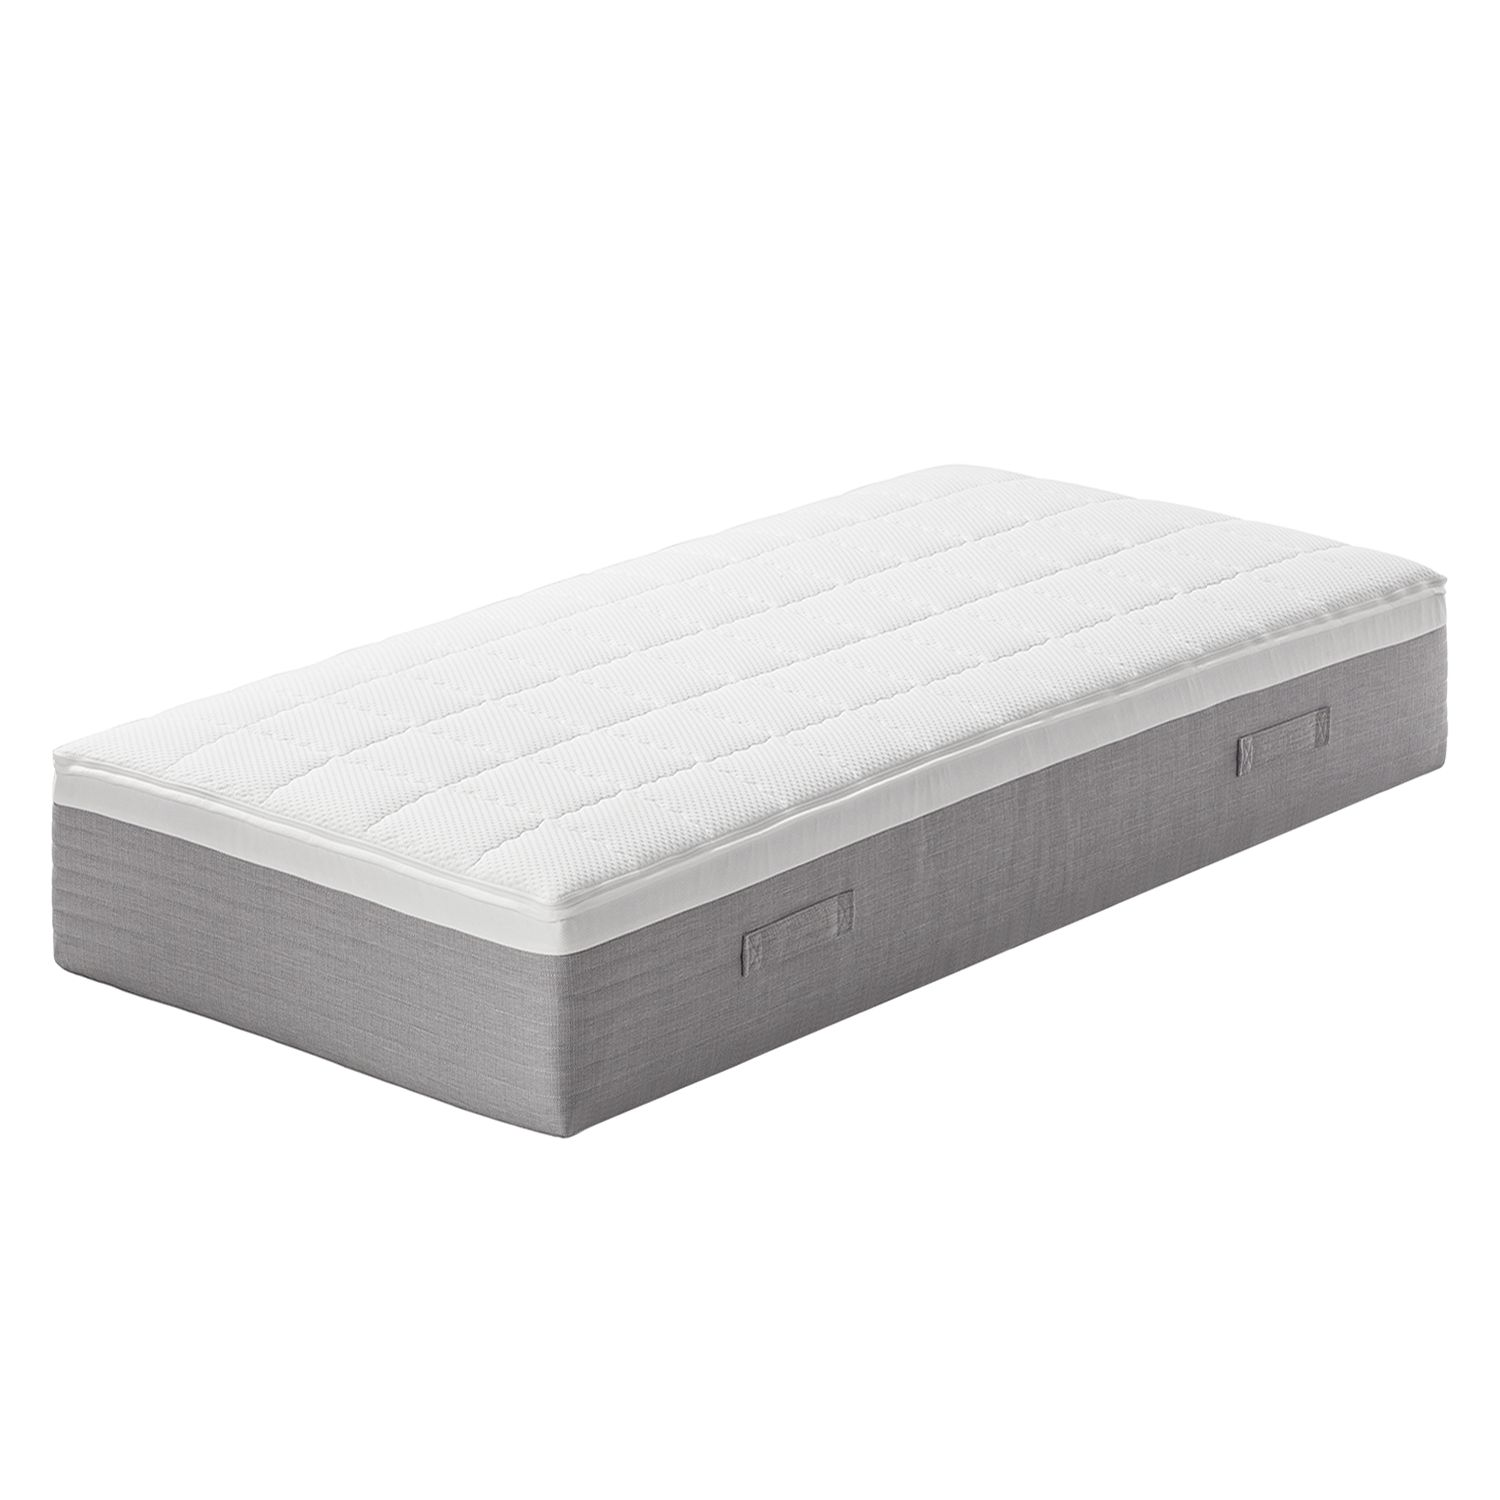 Matelas boxspring Smood Select - 100 x 200cm, Smood